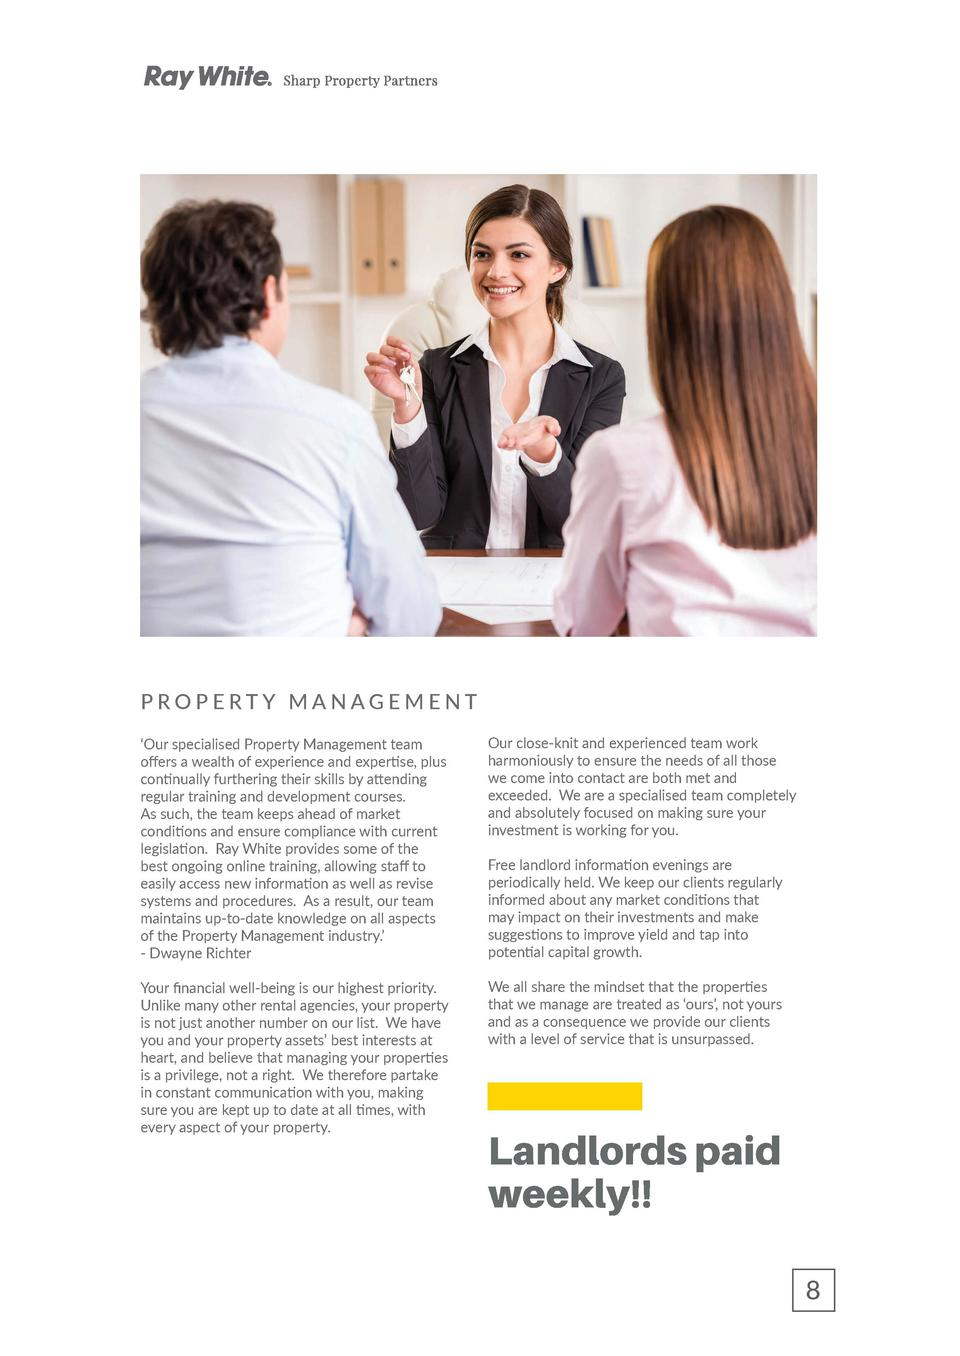 PROPERTY MANAGEMENT    Our specialised Property Management team offers a wealth of experience and expertise, plus continua...